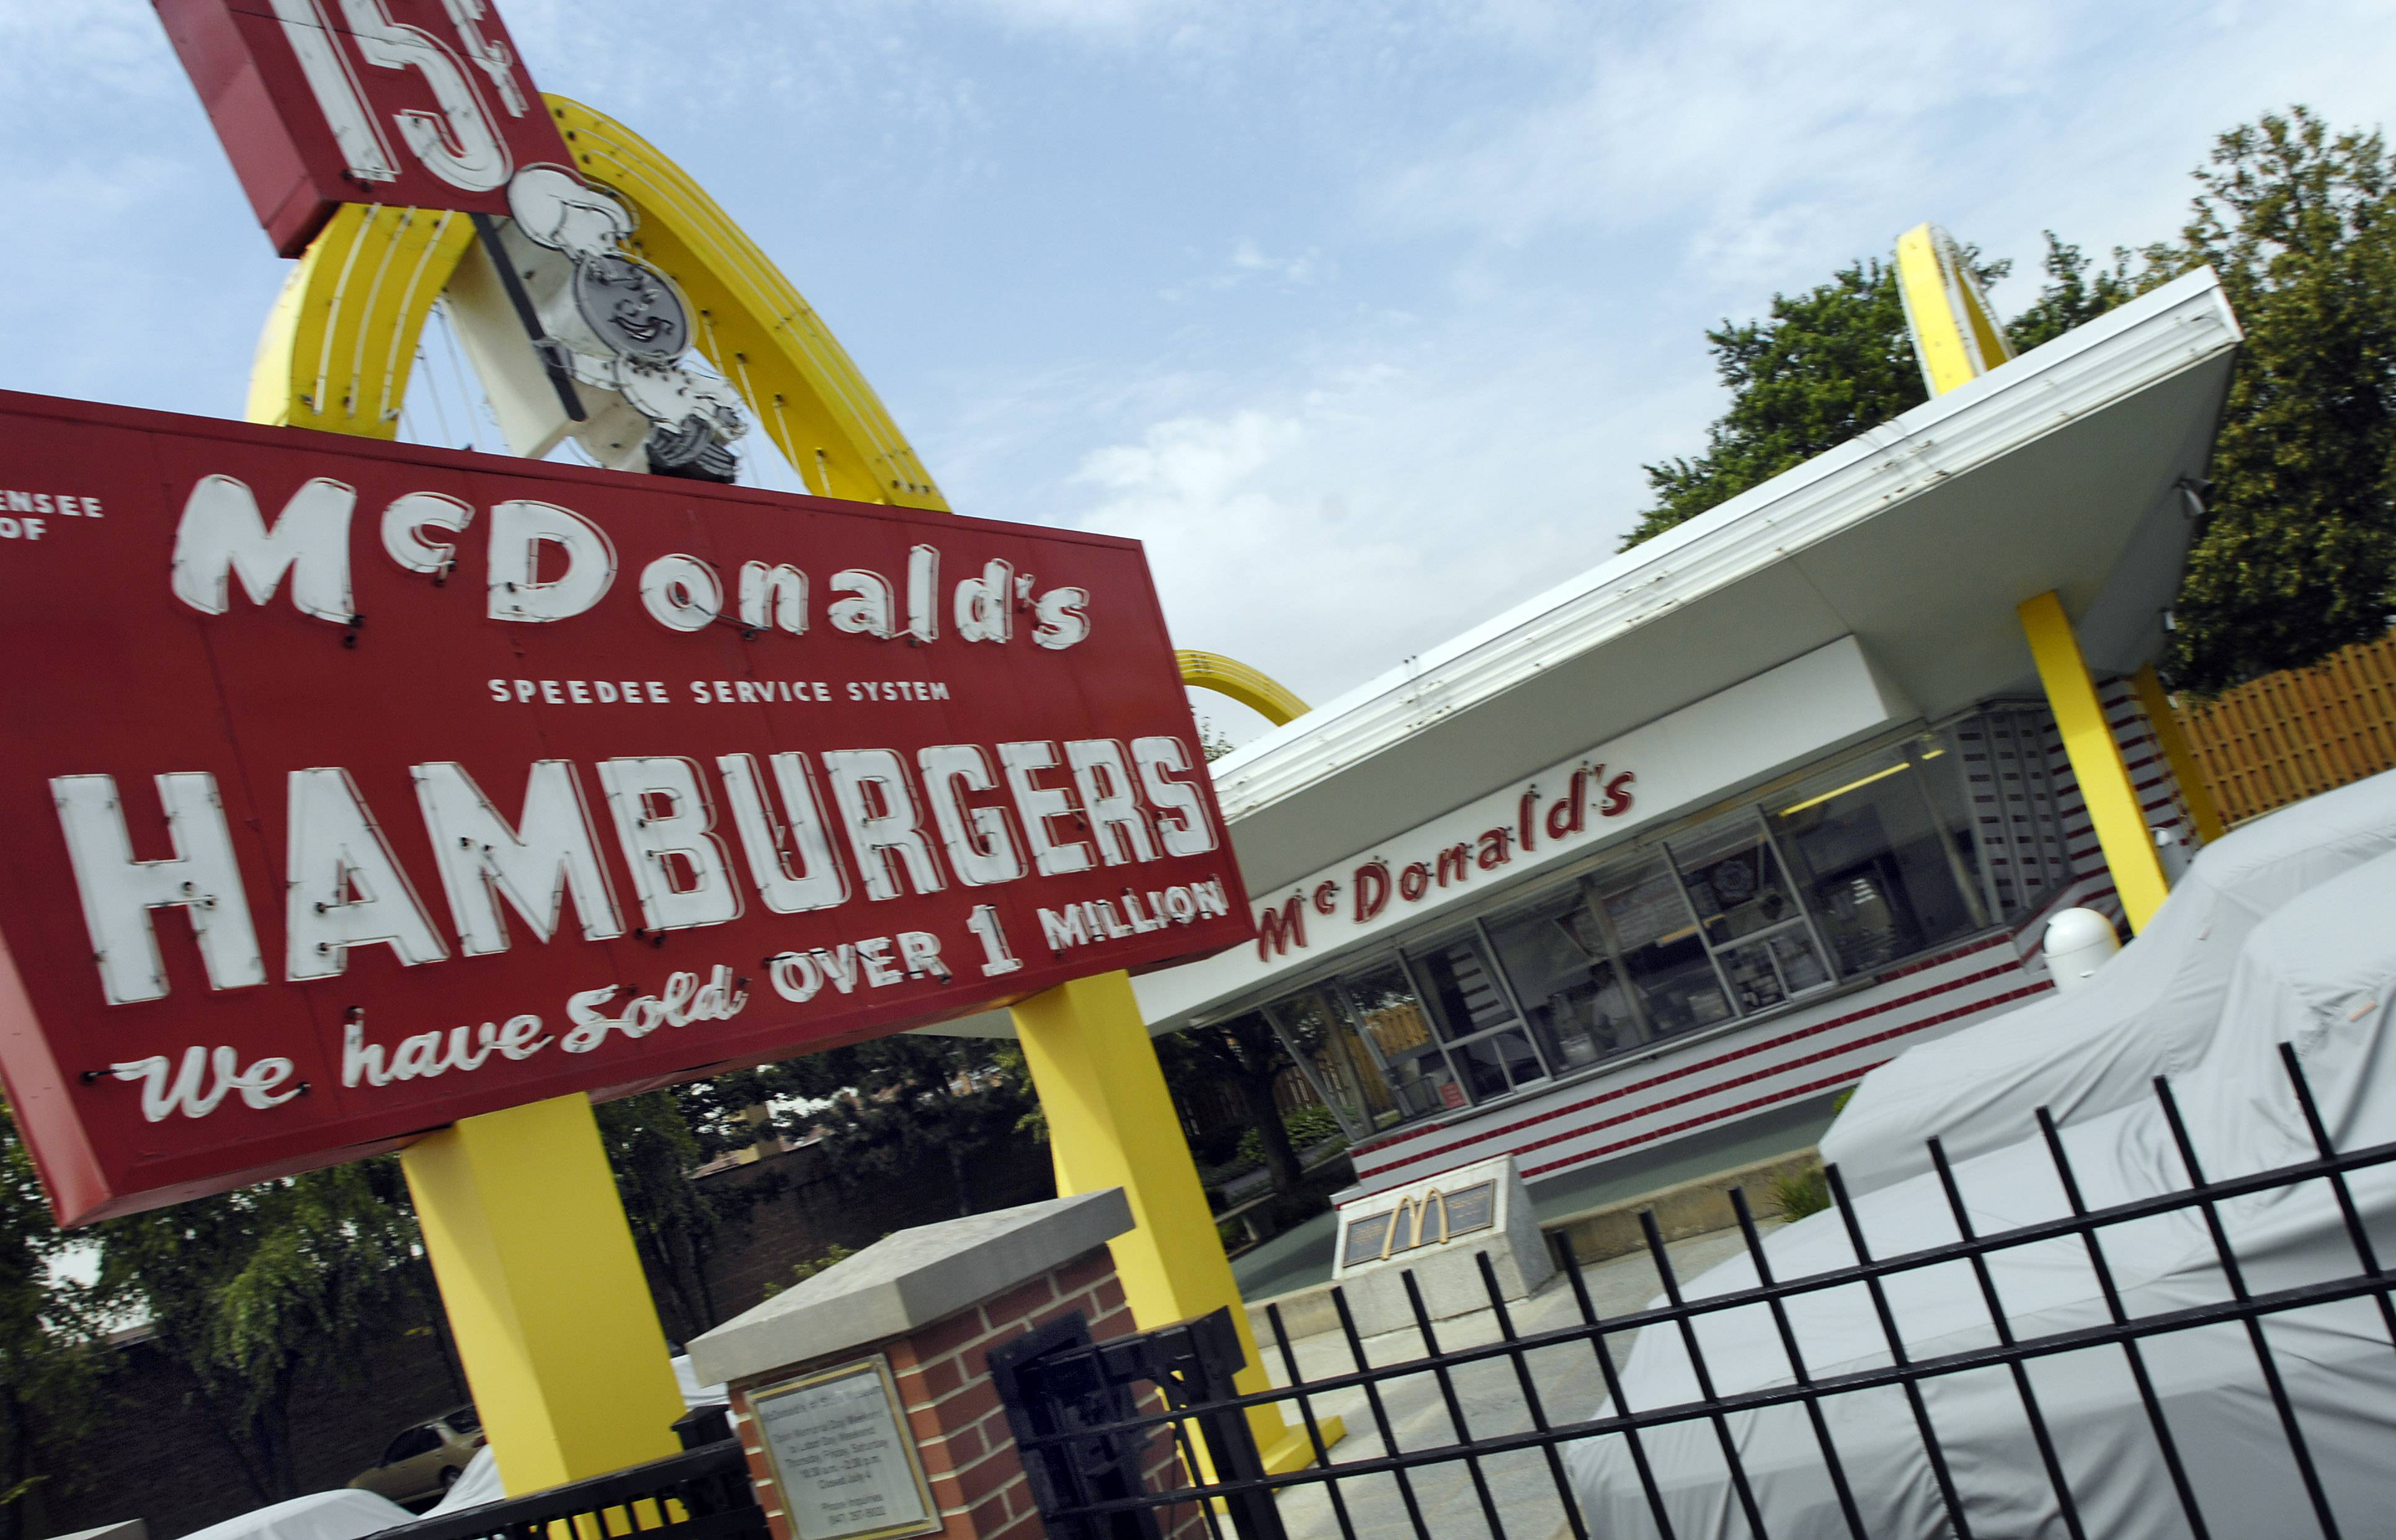 After the museum's interior closed in 2008, McDonald's continued to have the cars covered when the weather was bad and removed them from the lot entirely for storage during the harsh Illinois winters, according to Mecum Auctions.